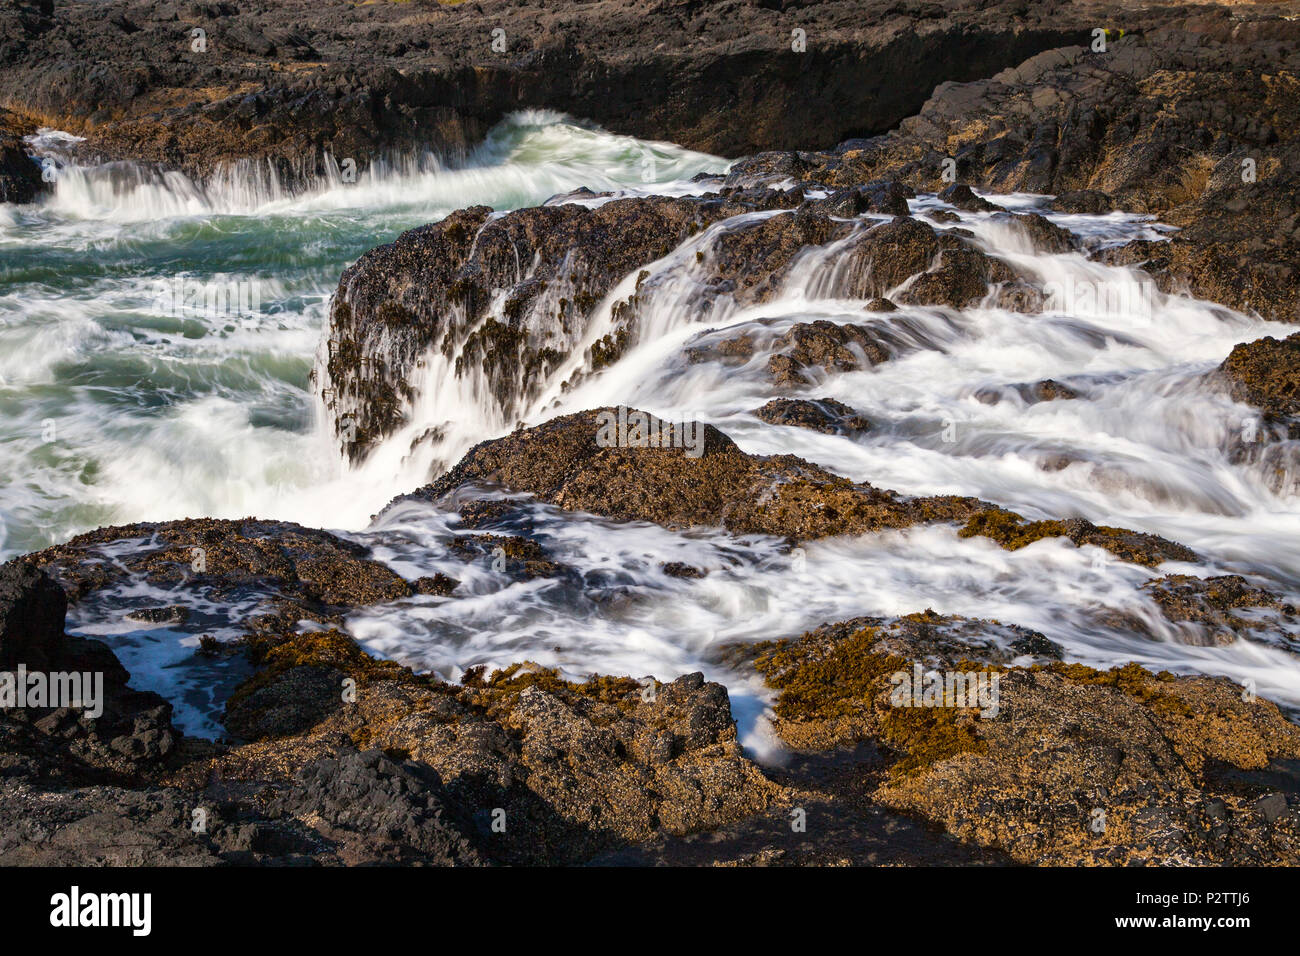 Water surges from tidal action at Cape Perpetua Scenic Area along Oregon's Central Coast south of Yachats. - Stock Image